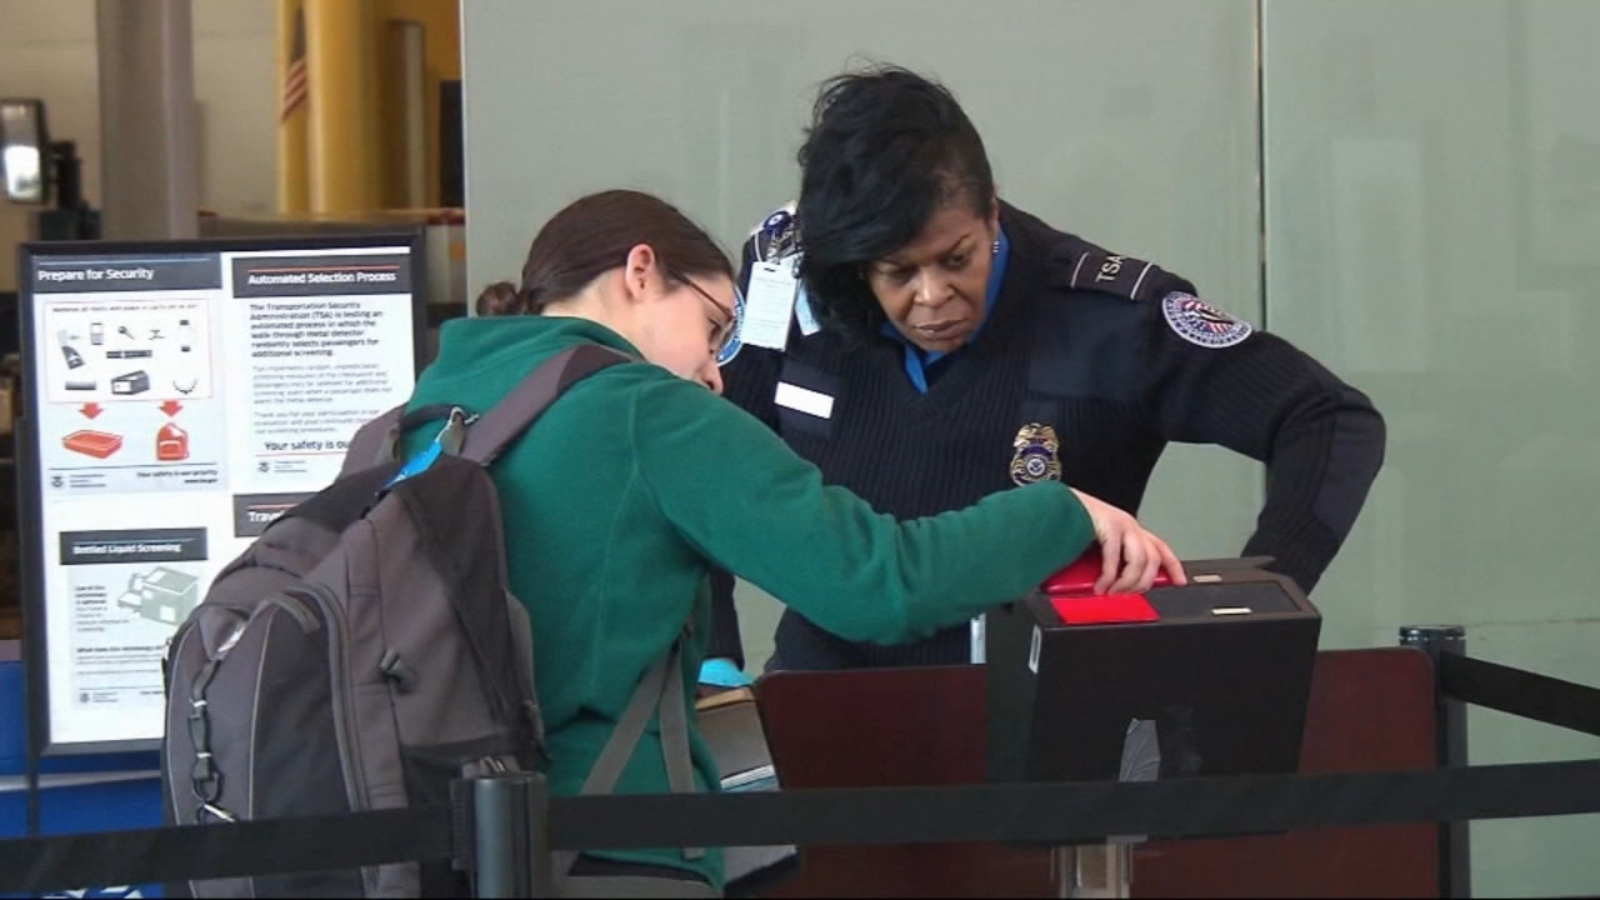 Don't have a Real ID yet? TSA spokesperson explains what to use for flying instead